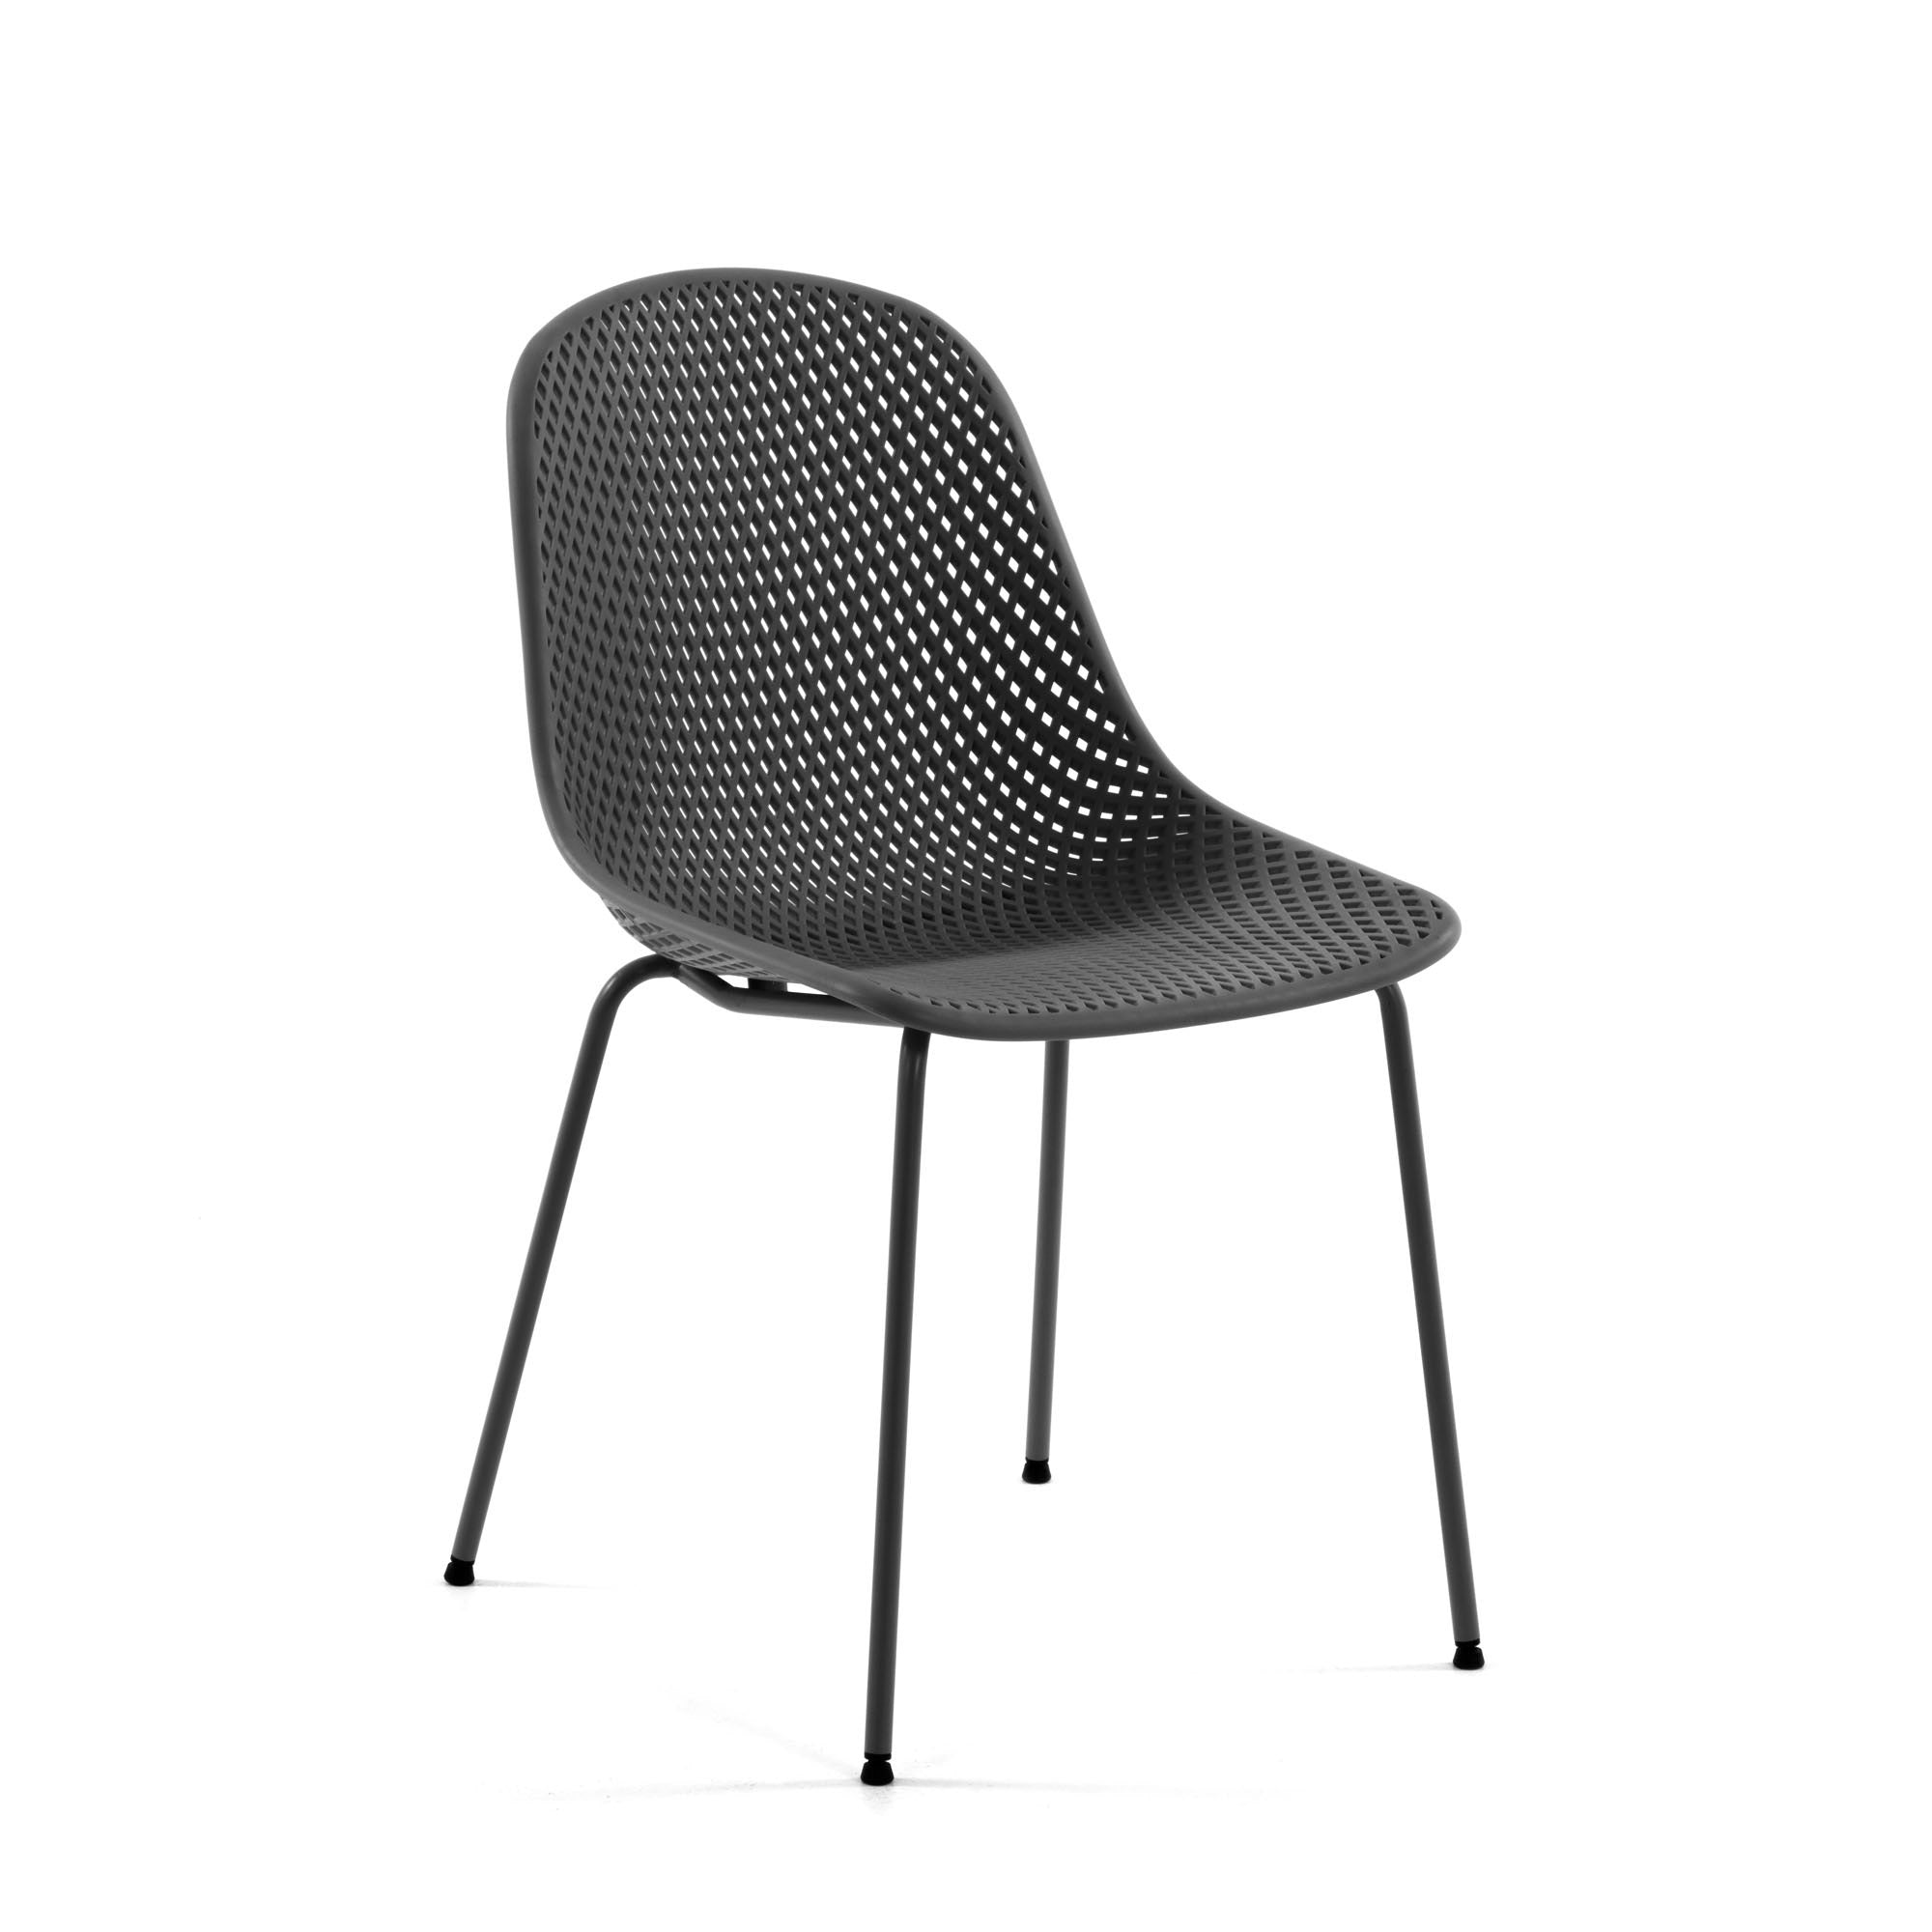 Luino Outdoor Grey Chair, Chair - Home-Buy Interiors